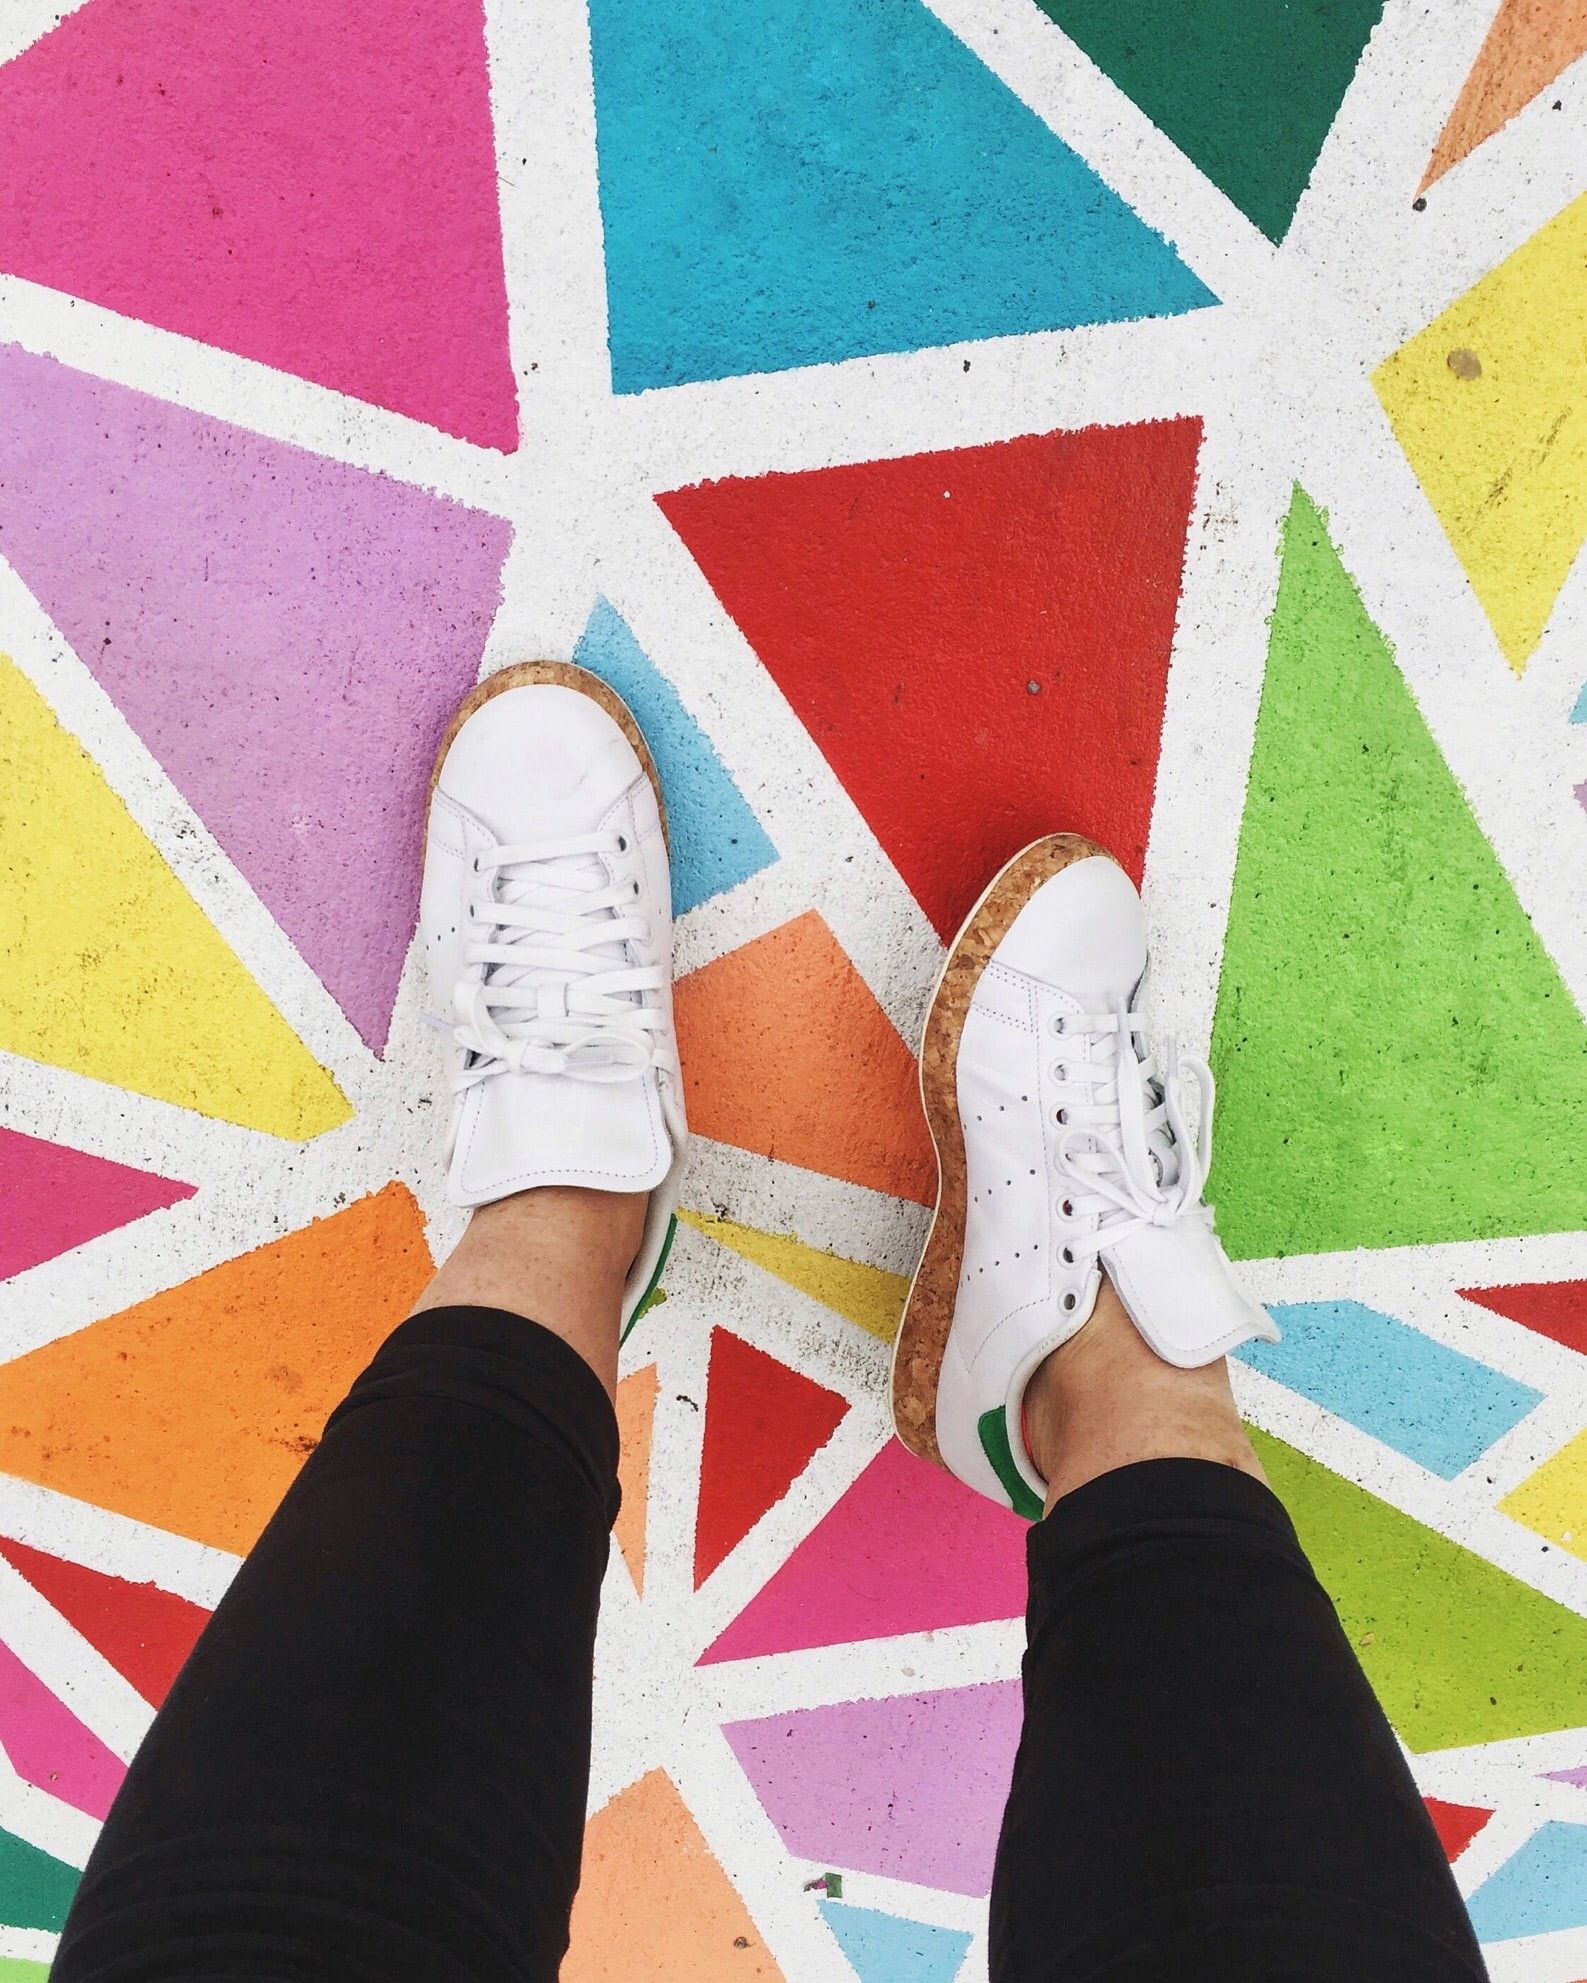 What Are the Best Colors for Marketing?